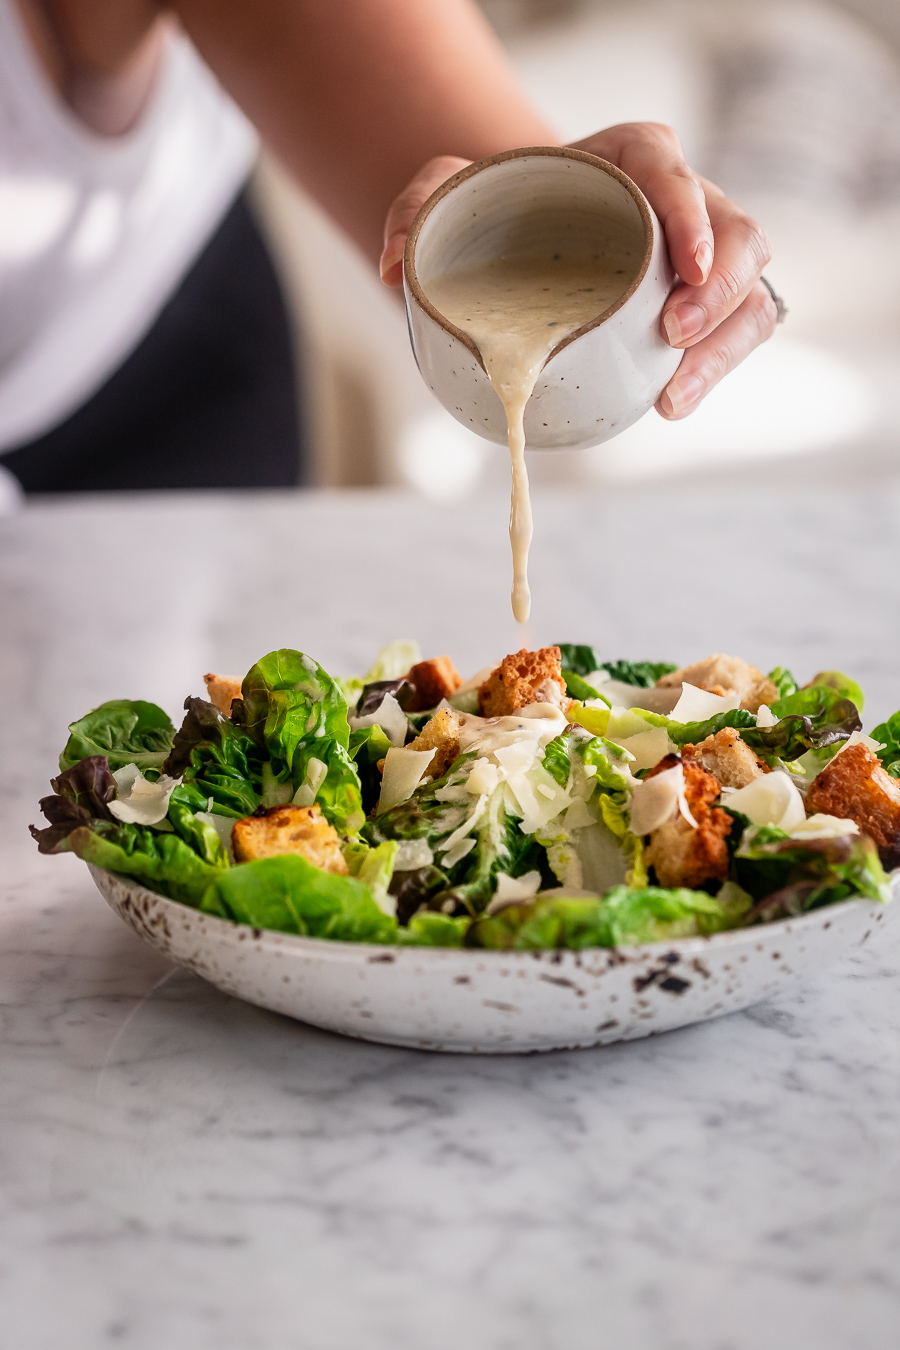 A woman pouring dressing over a bowl of Caesar salad